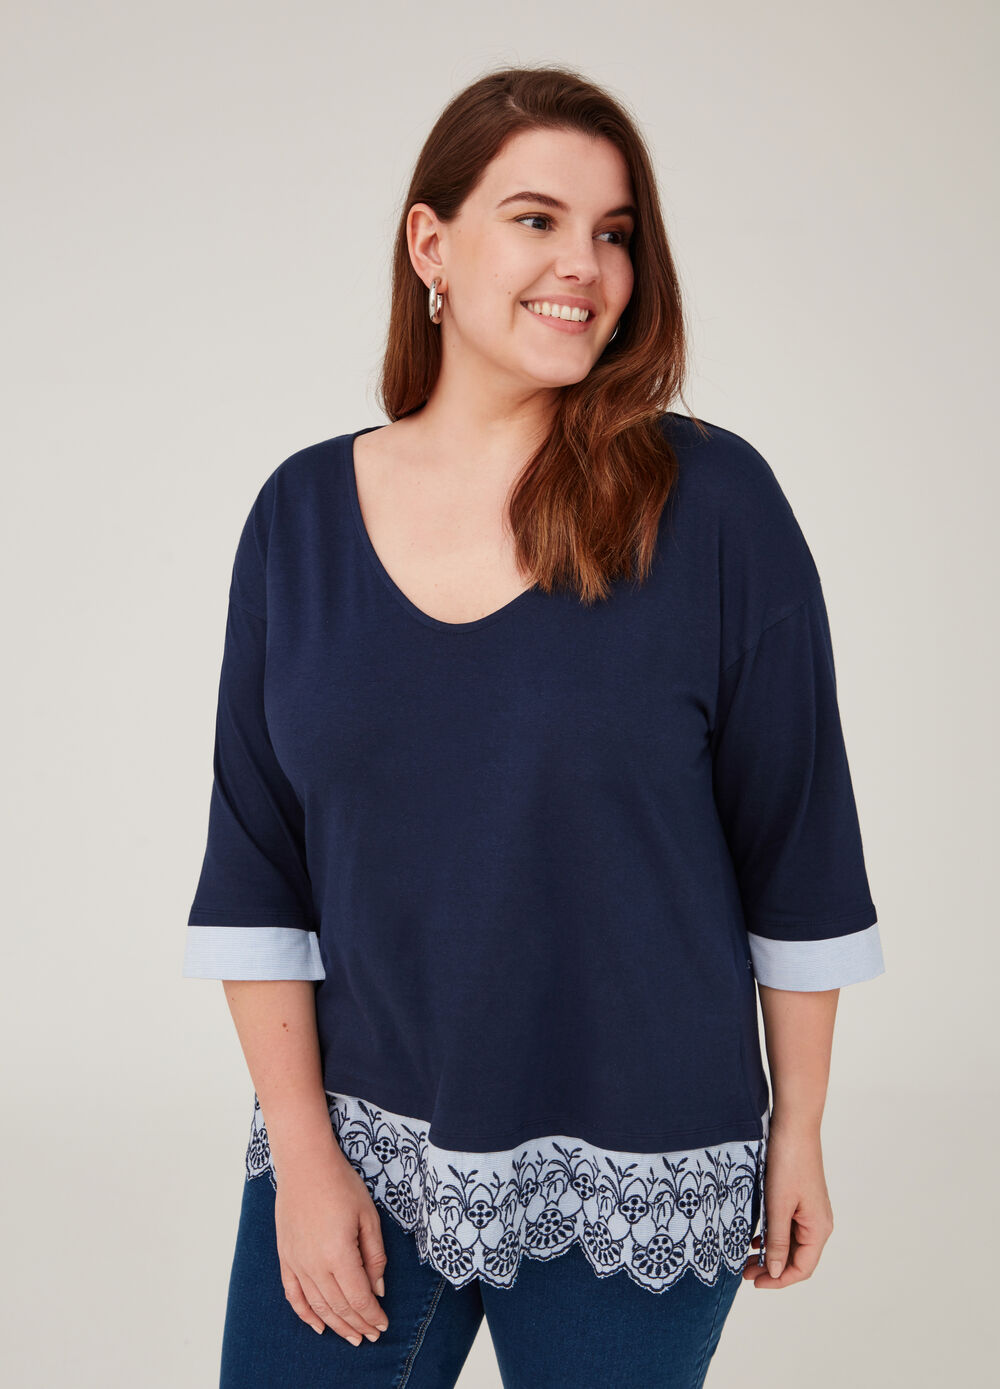 Curvy V-neck T-shirt with embroidery